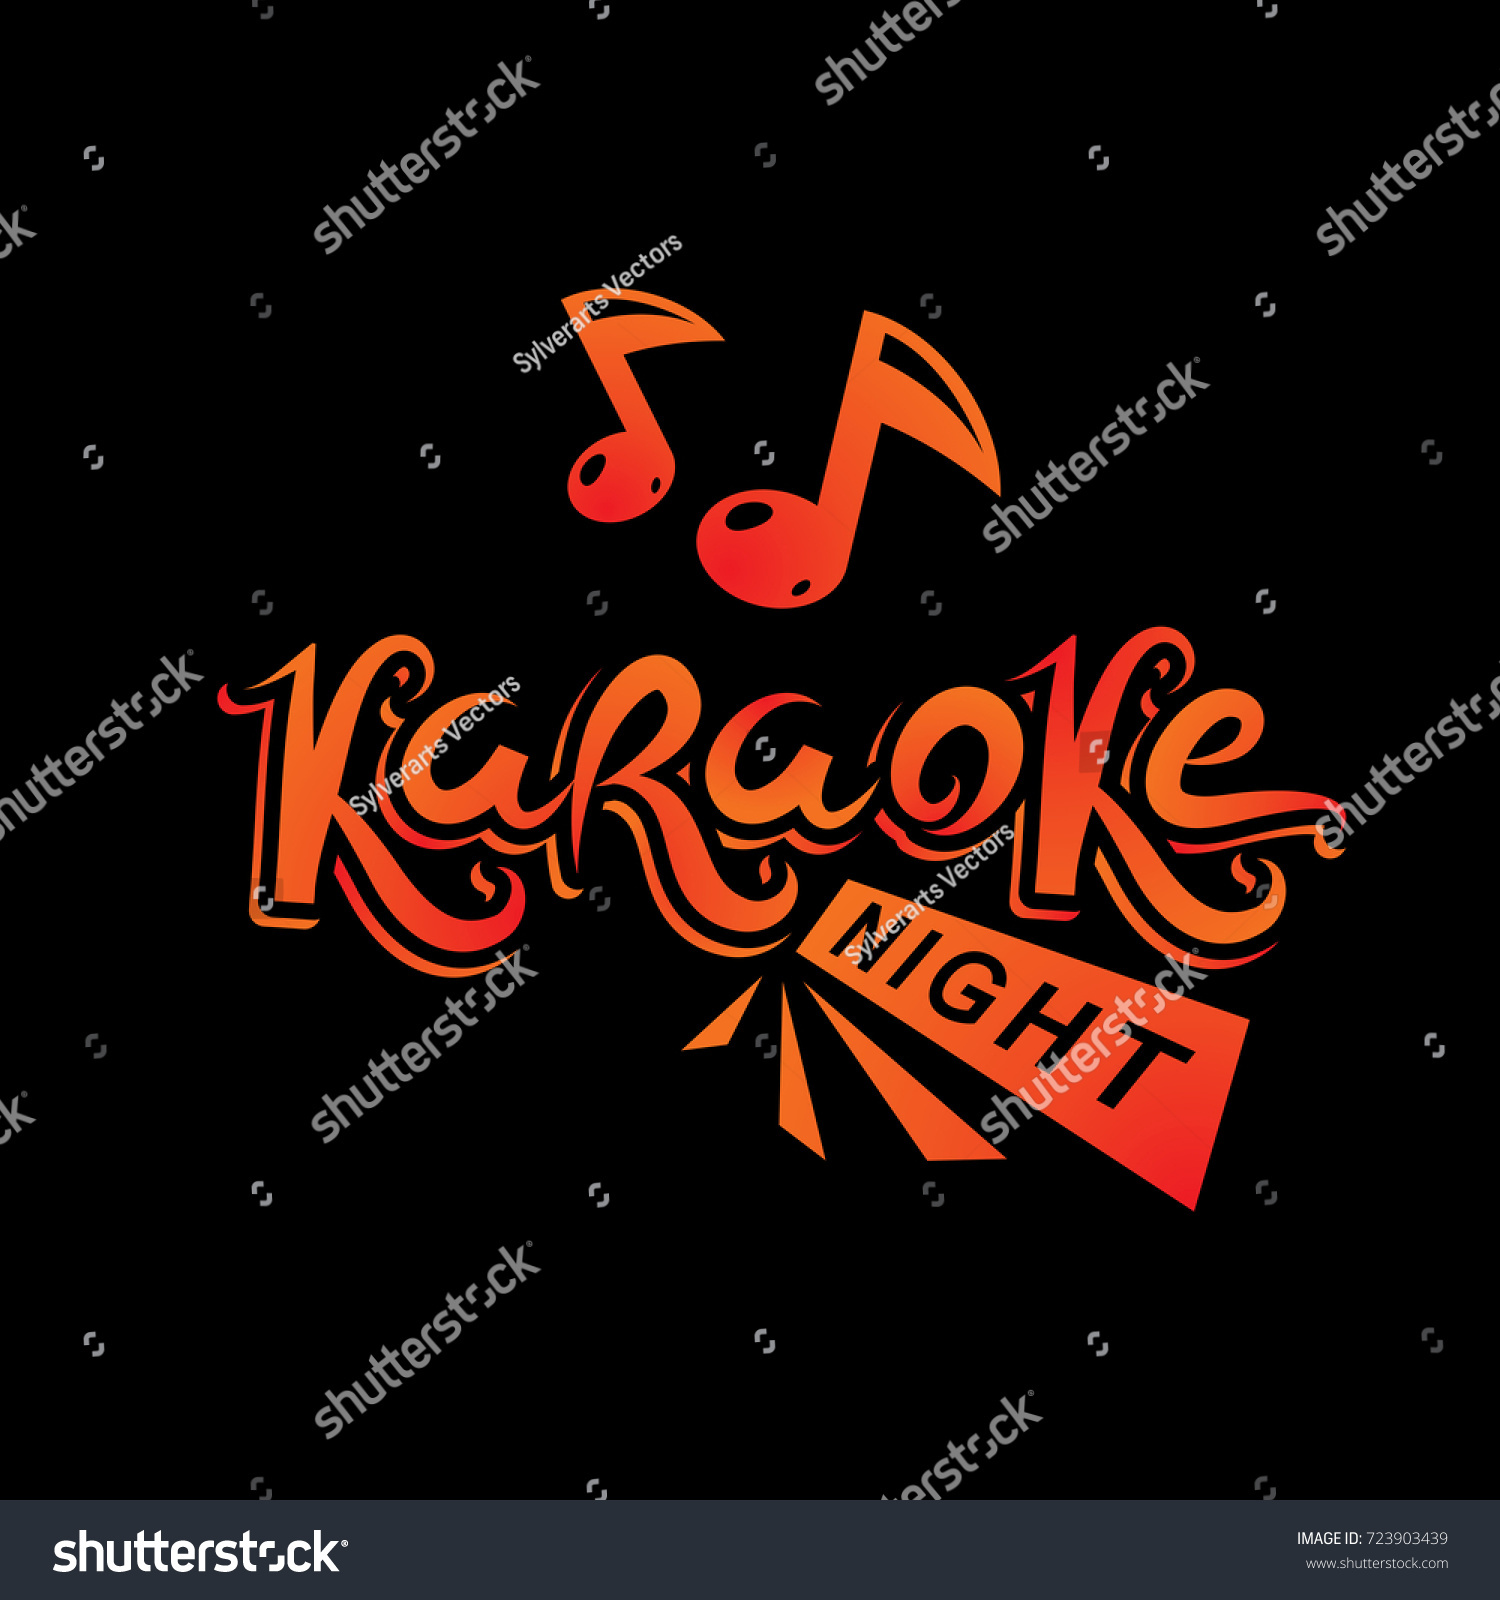 Karaoke party vector writing composed musical stock vector karaoke party vector writing composed with musical notes leisure and relaxation lifestyle emblem for nightclub monicamarmolfo Image collections